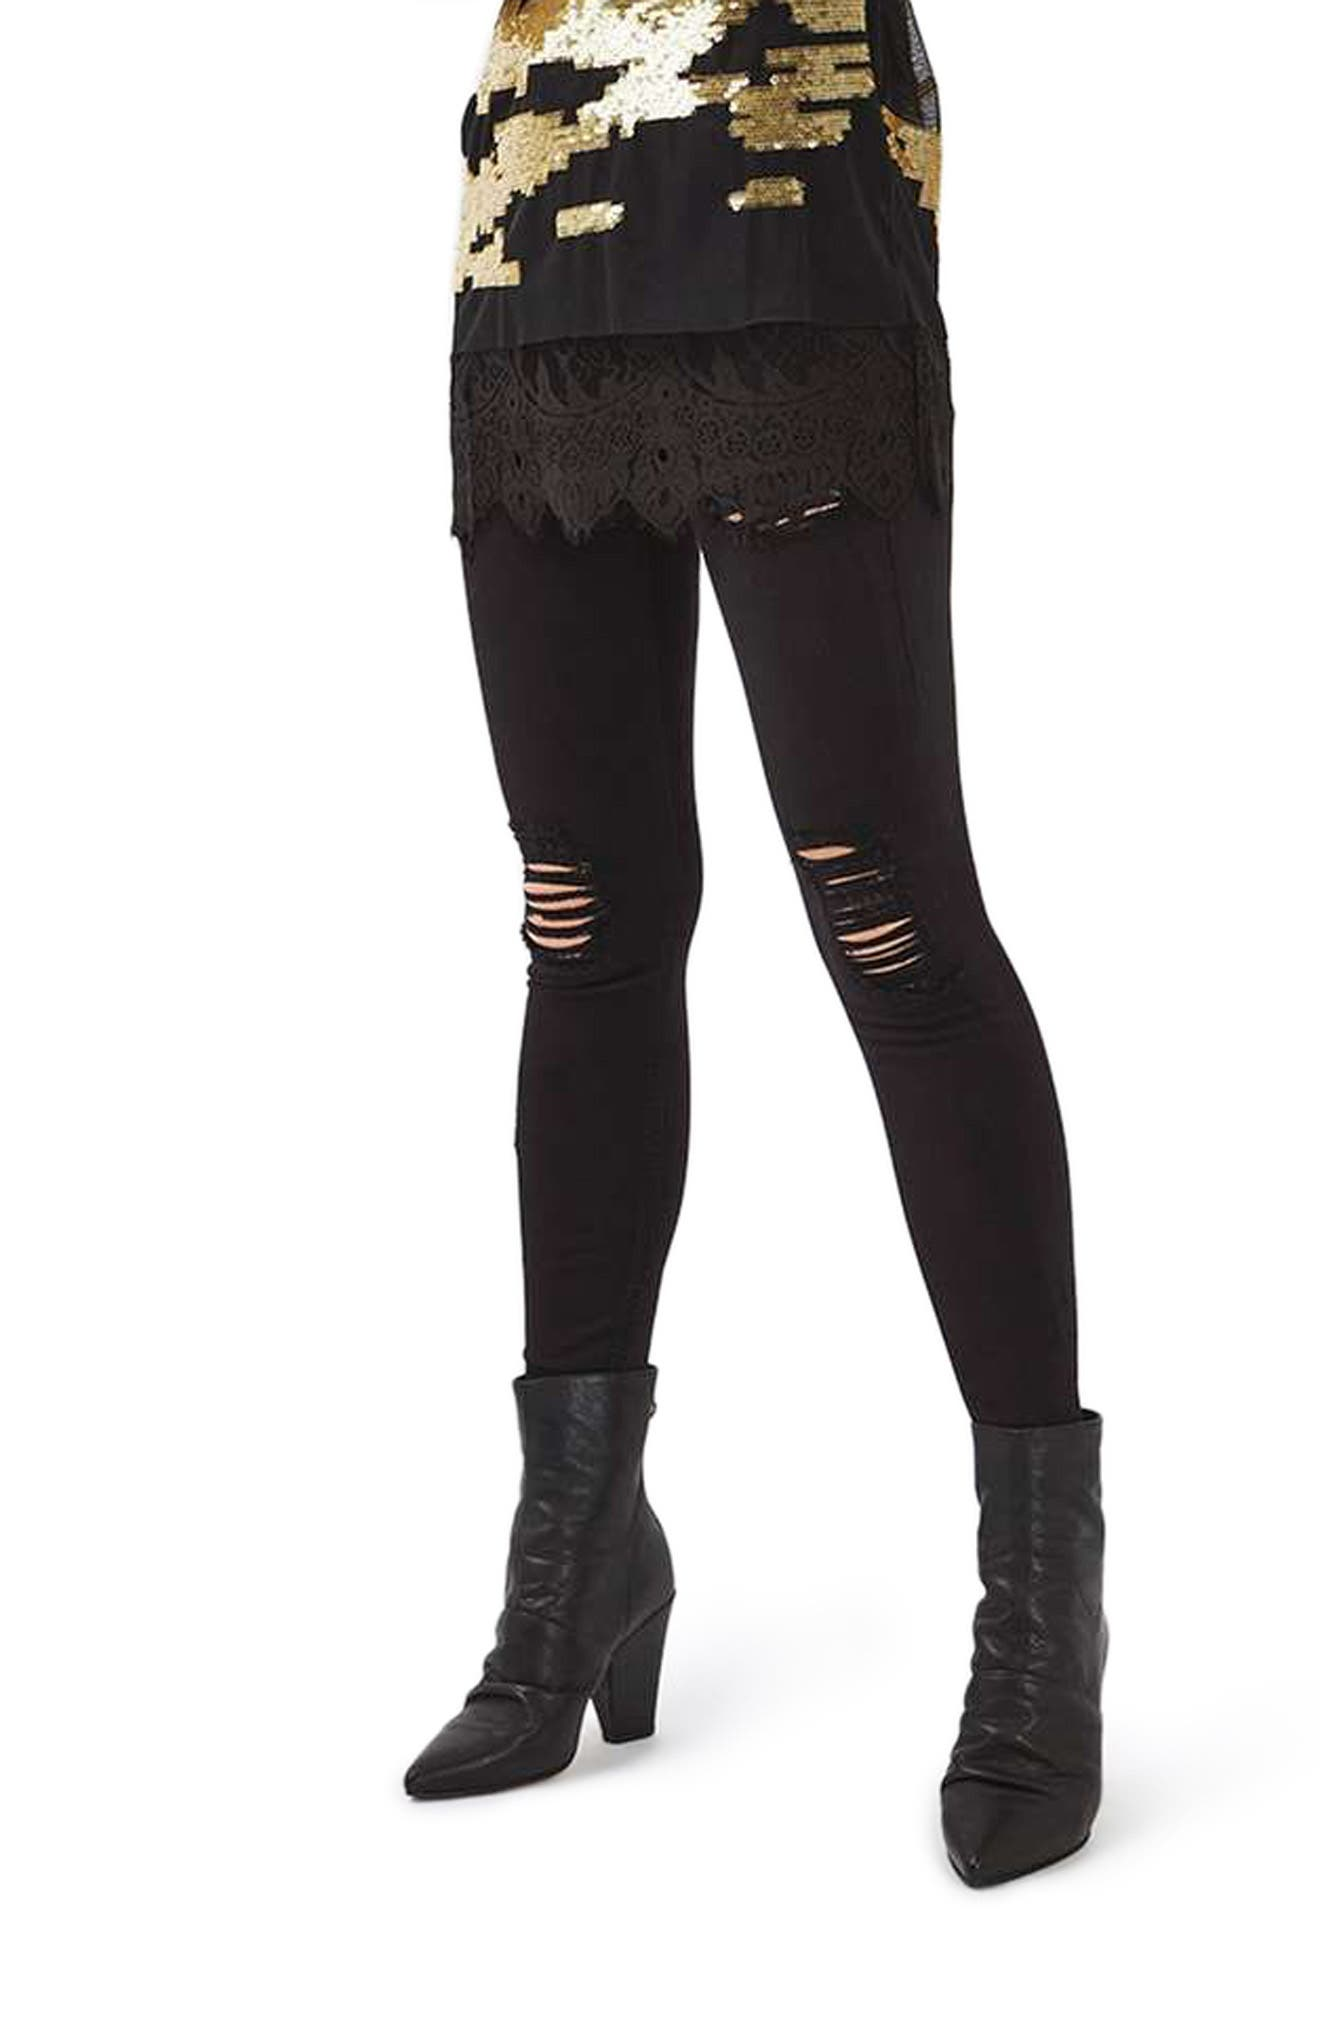 TOPSHOP, Ripped High Waist Ankle Skinny Jeans, Main thumbnail 1, color, 001